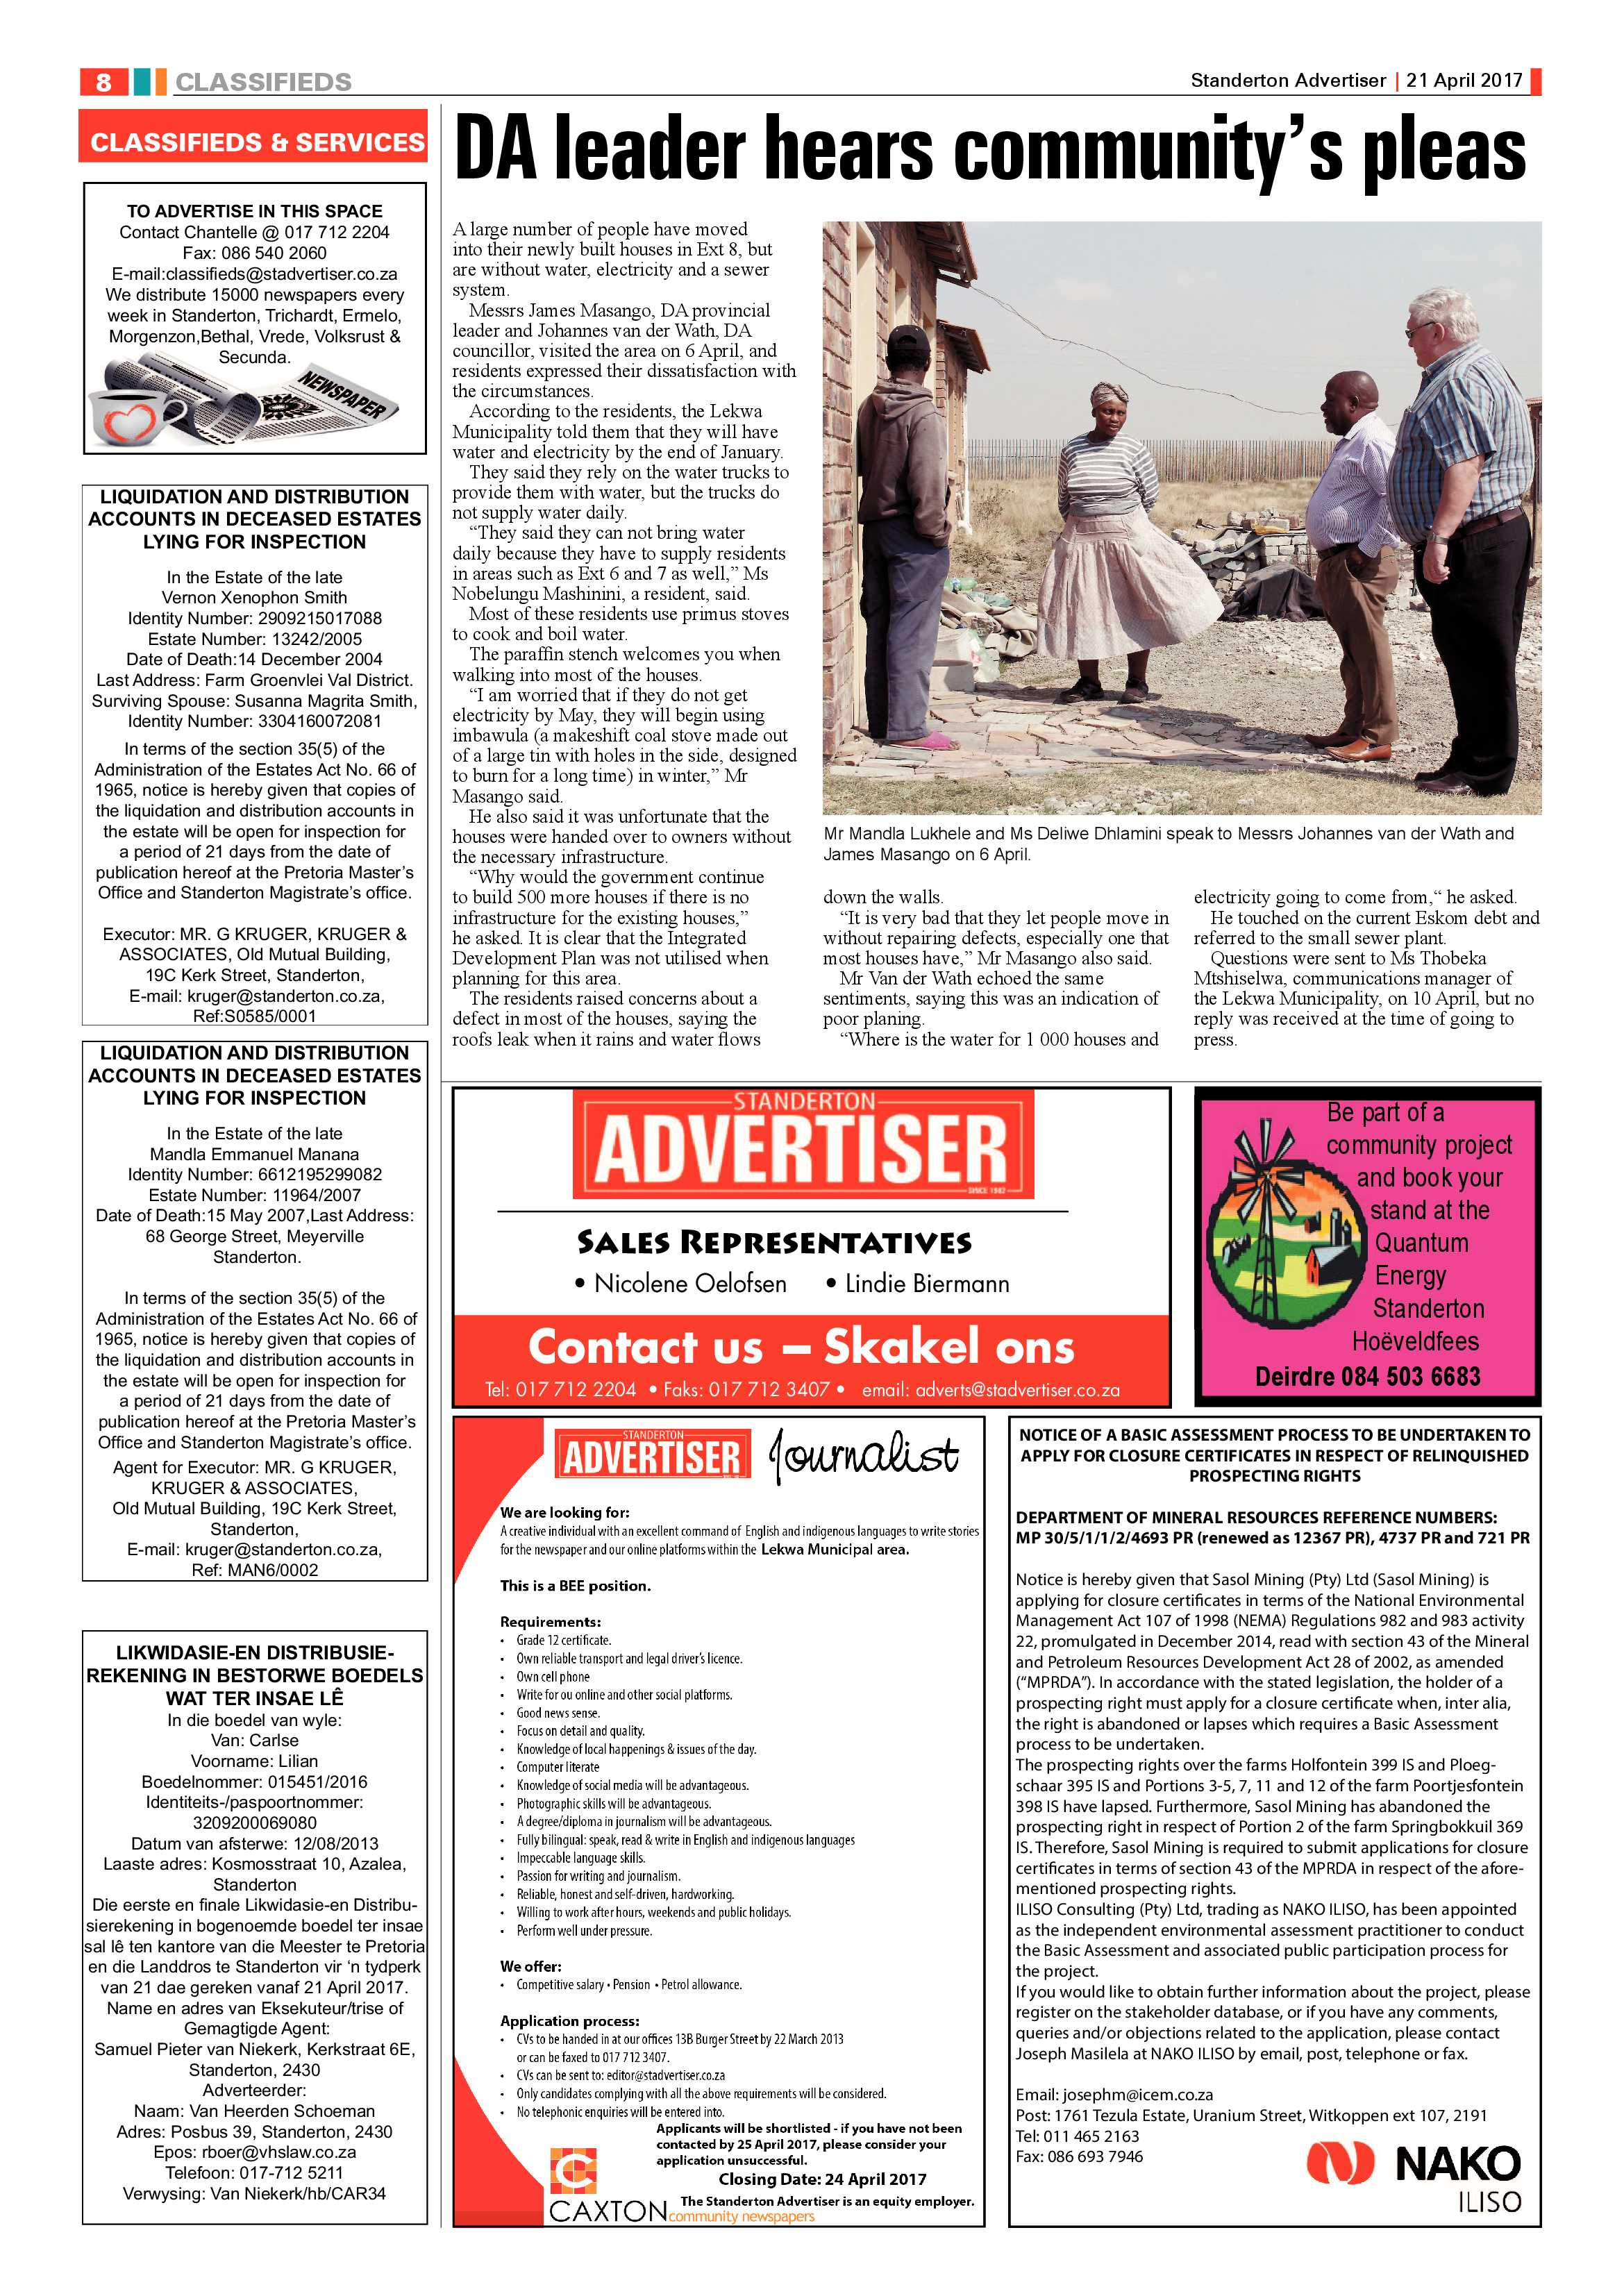 standerton-advertiser-21-april-2017-epapers-page-8